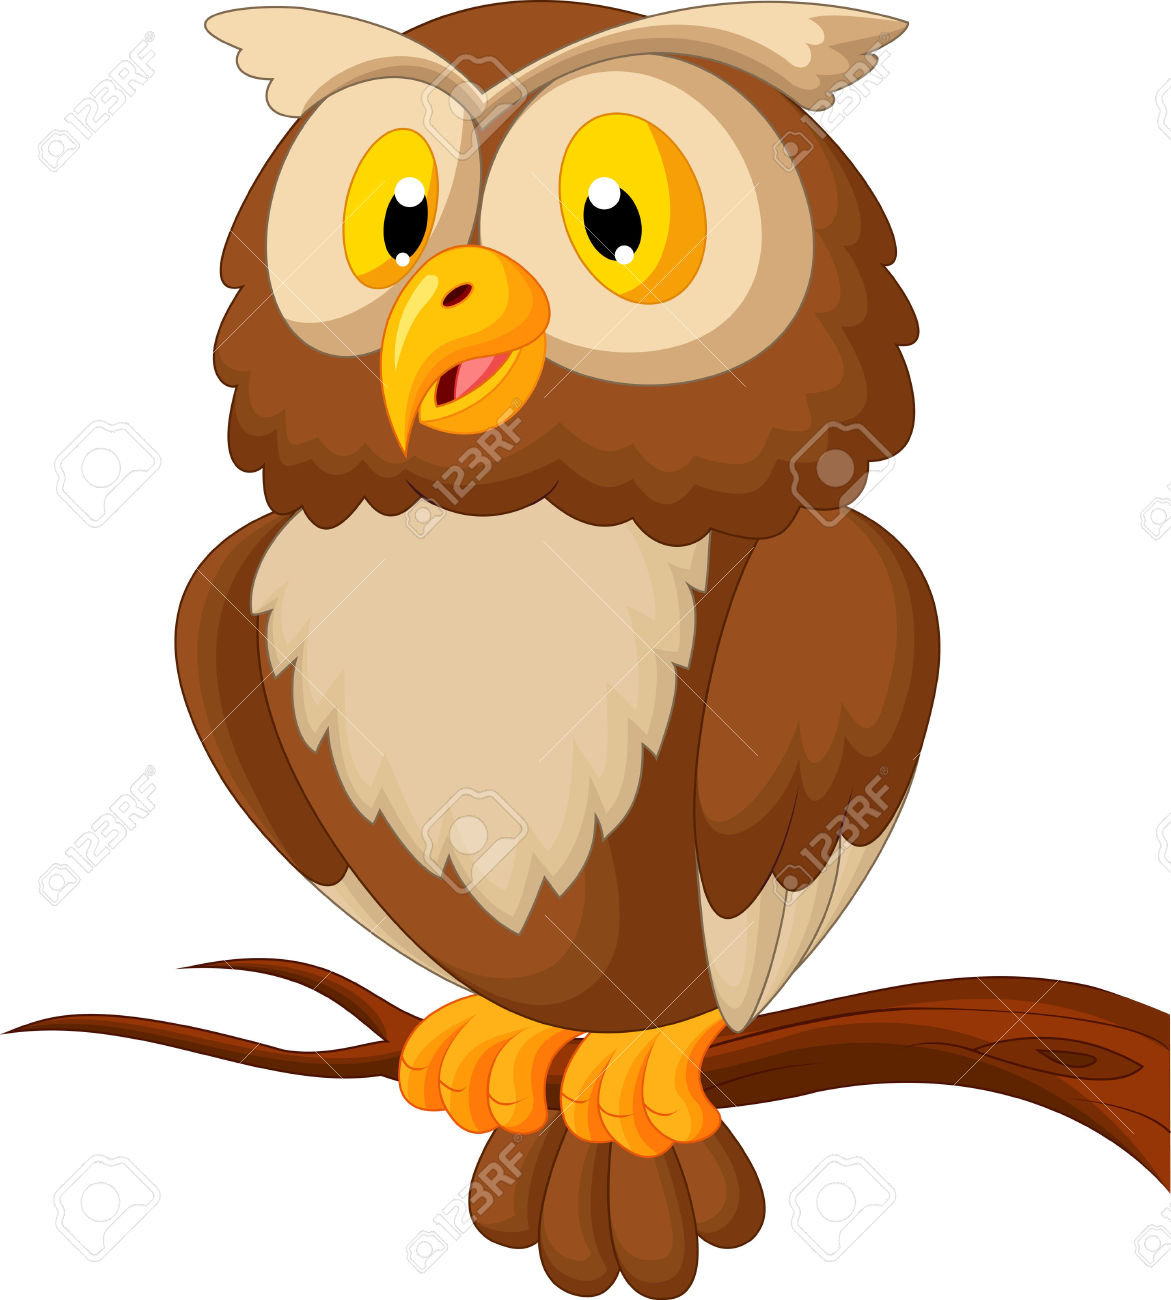 Hoot clipart #8, Download drawings